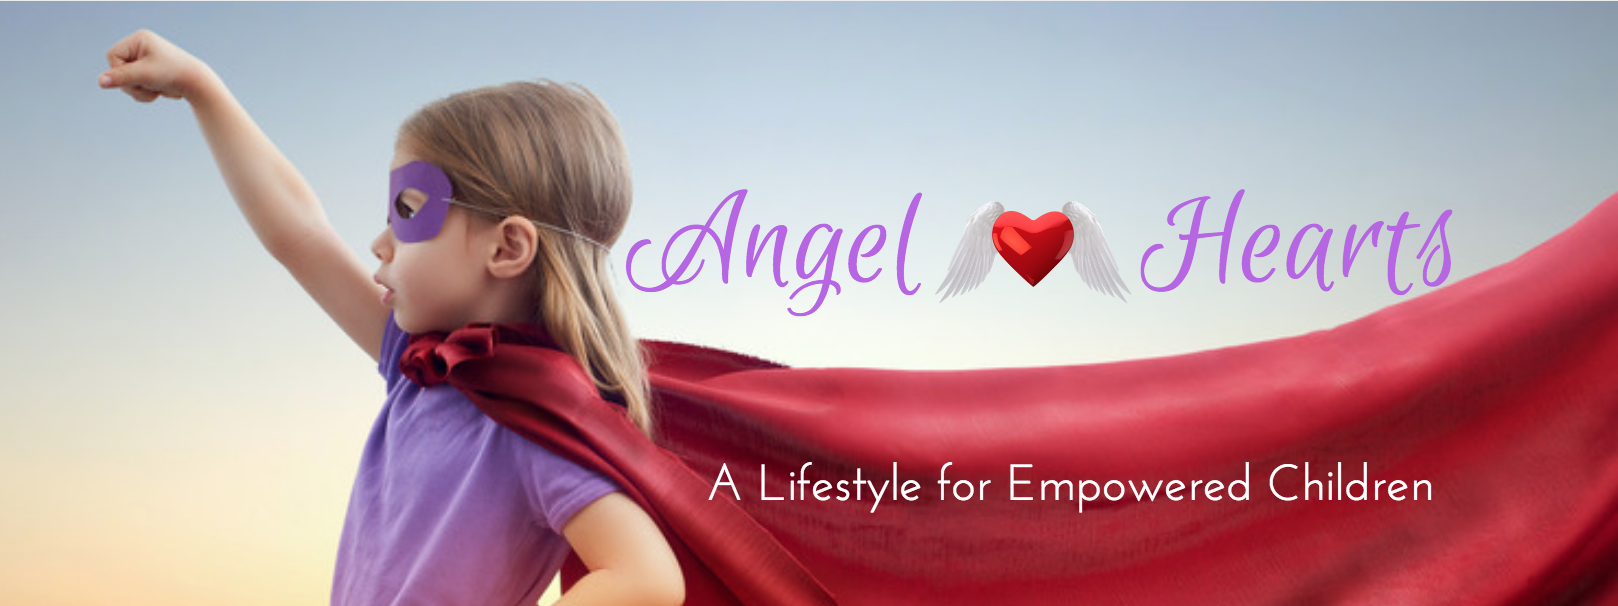 angelhearts-lifestyle.png